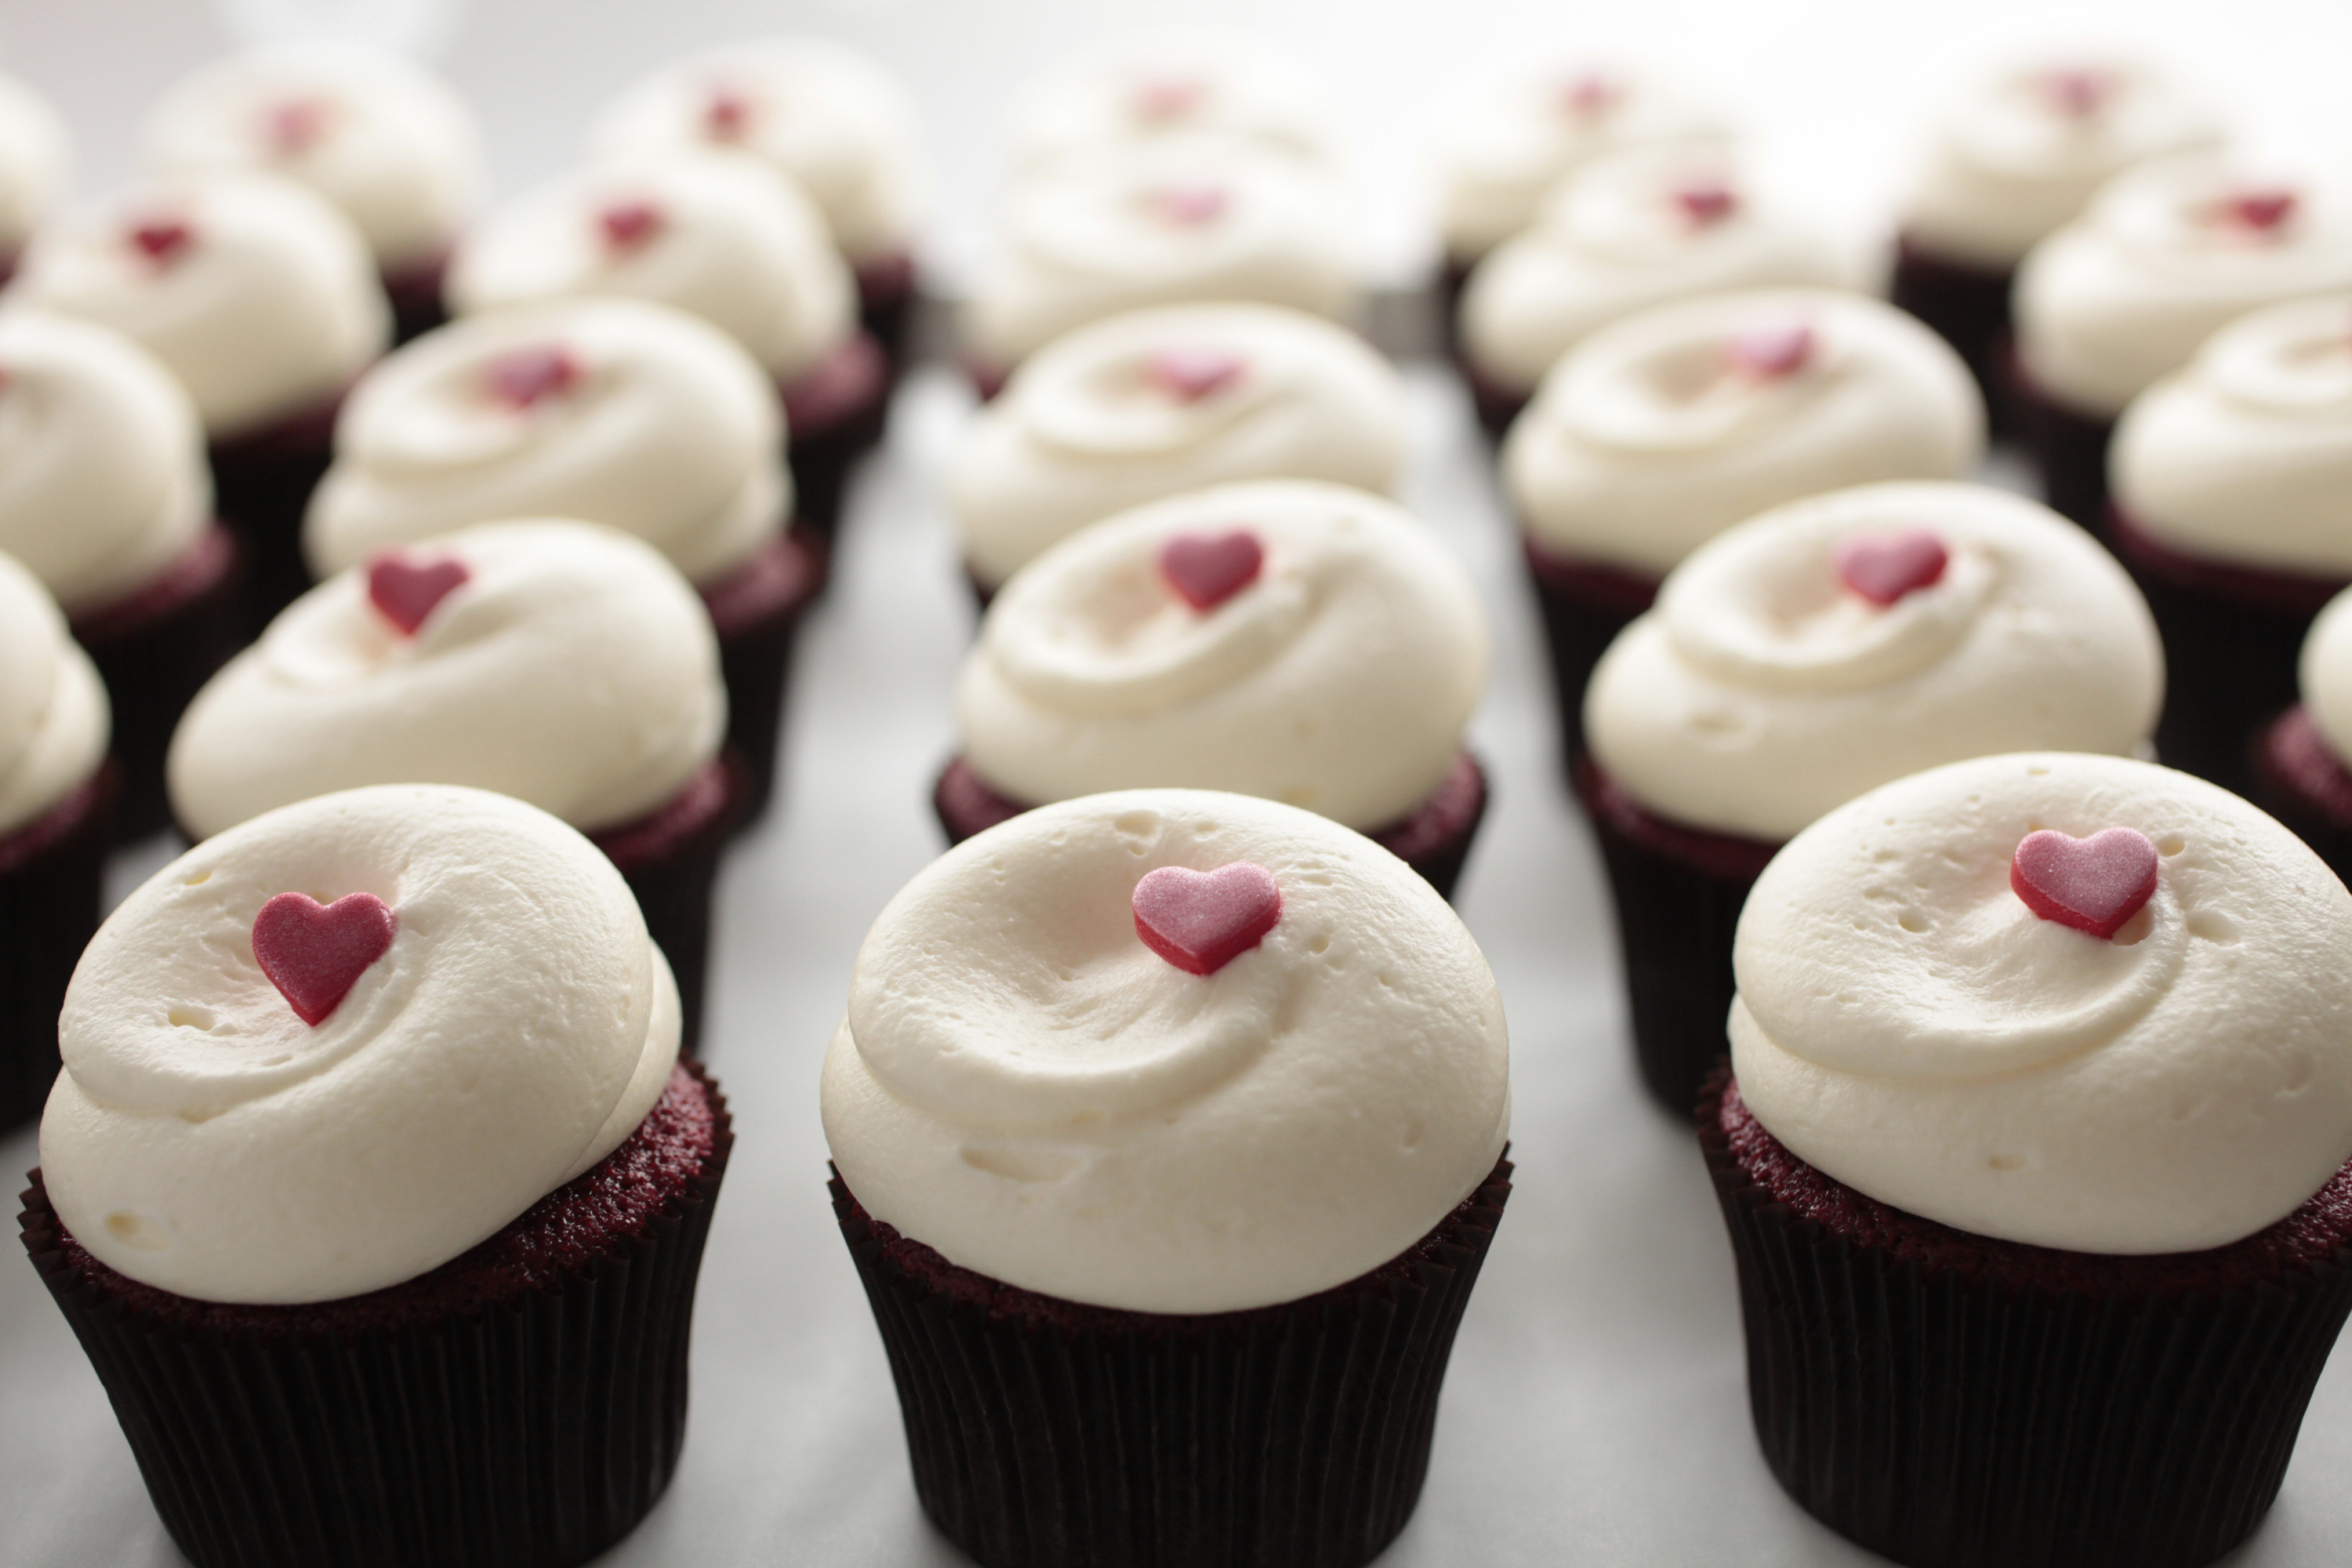 Check out the 11 best cupcakes in NYC